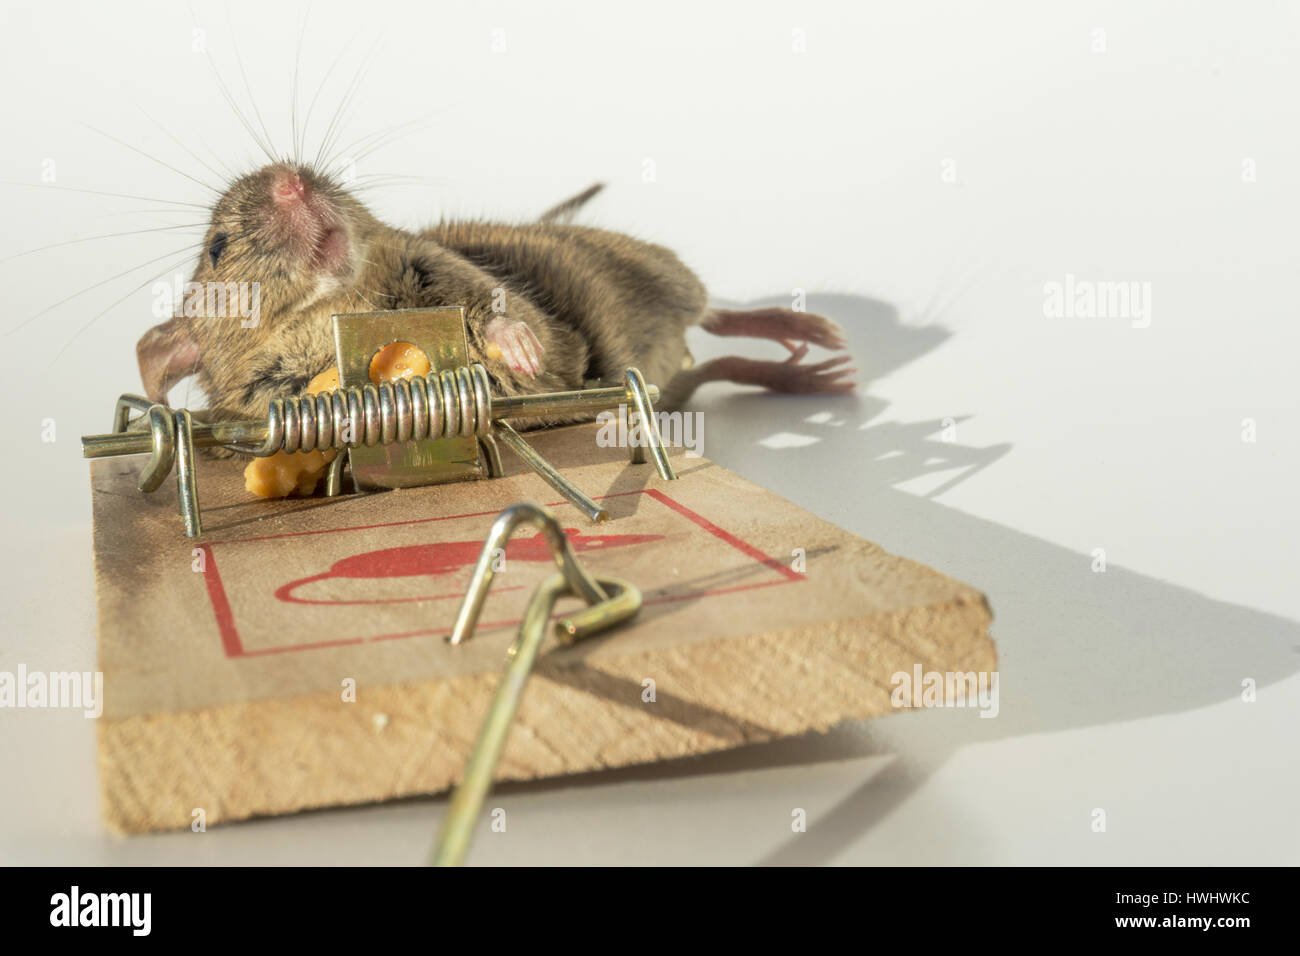 Mouse trapped and killed - Stock Image